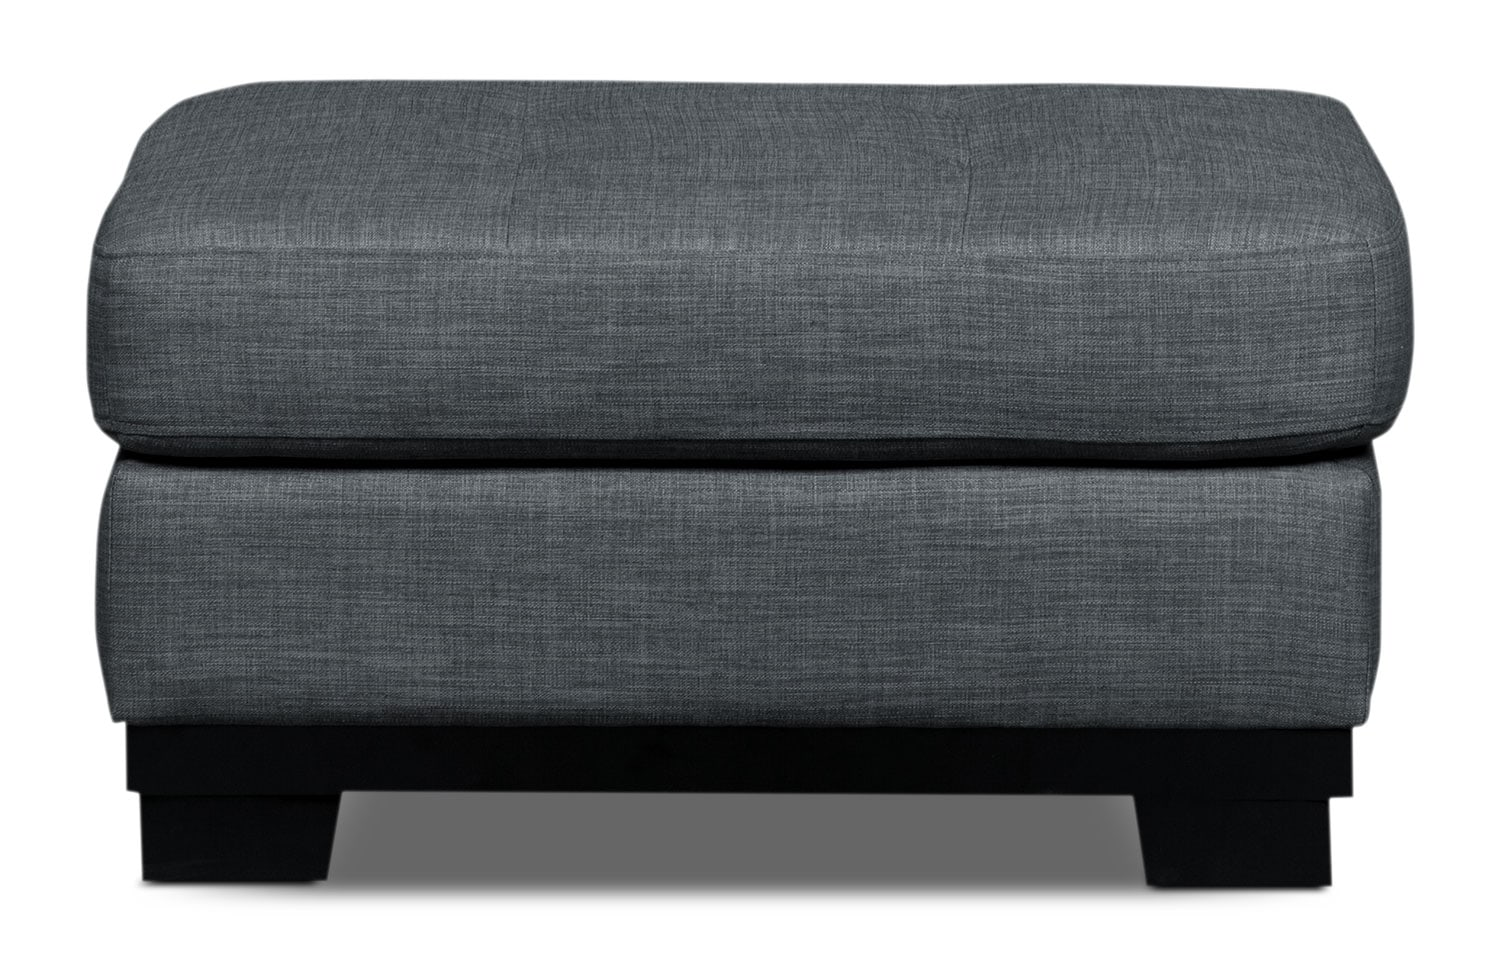 Living Room Furniture - Oakdale Linen-Look Fabric Ottoman – Steel